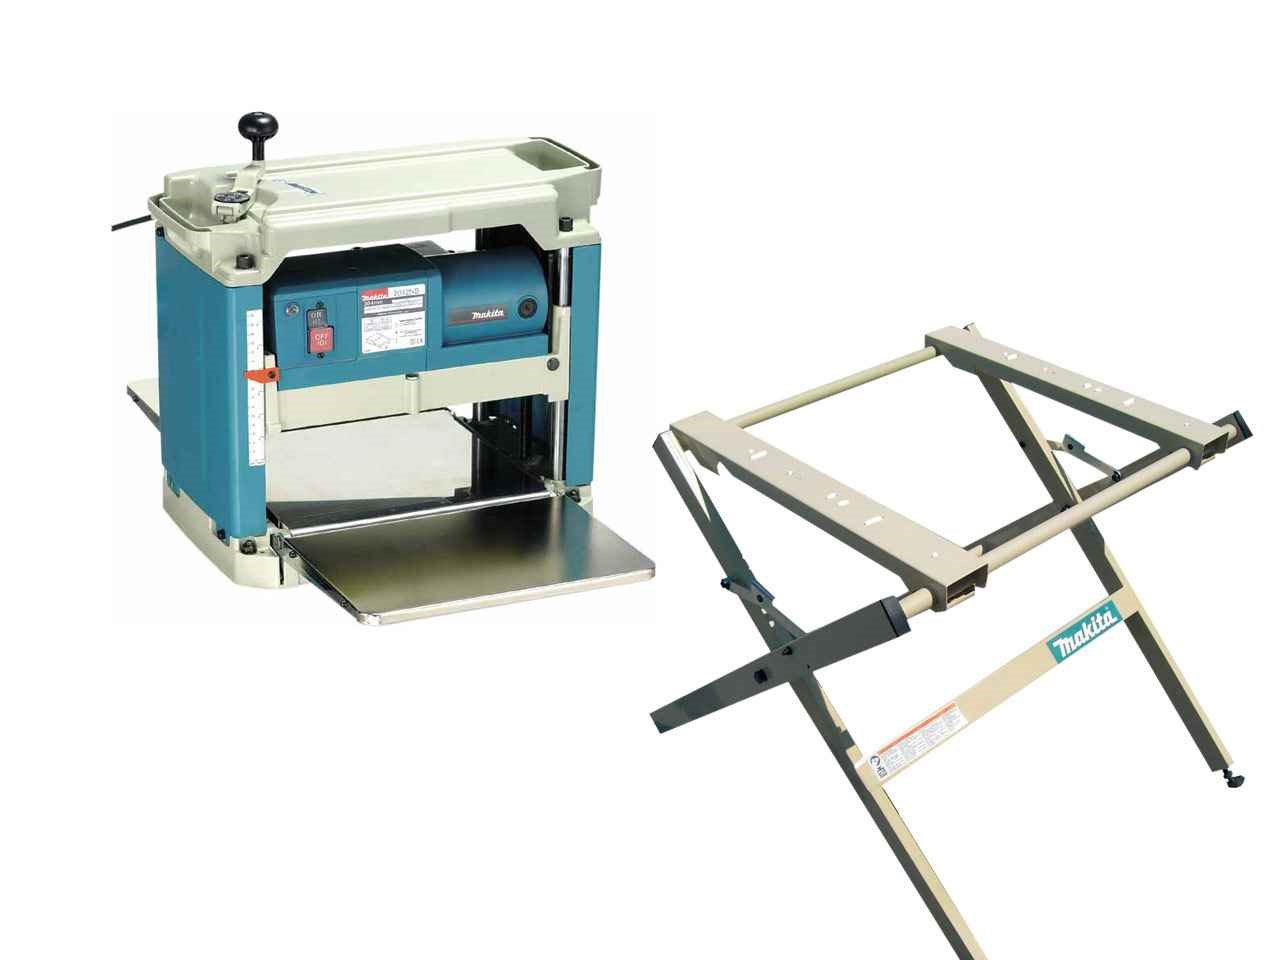 Makita 2012NBX 240v Planer Thicknesser with 198689-7 Stand